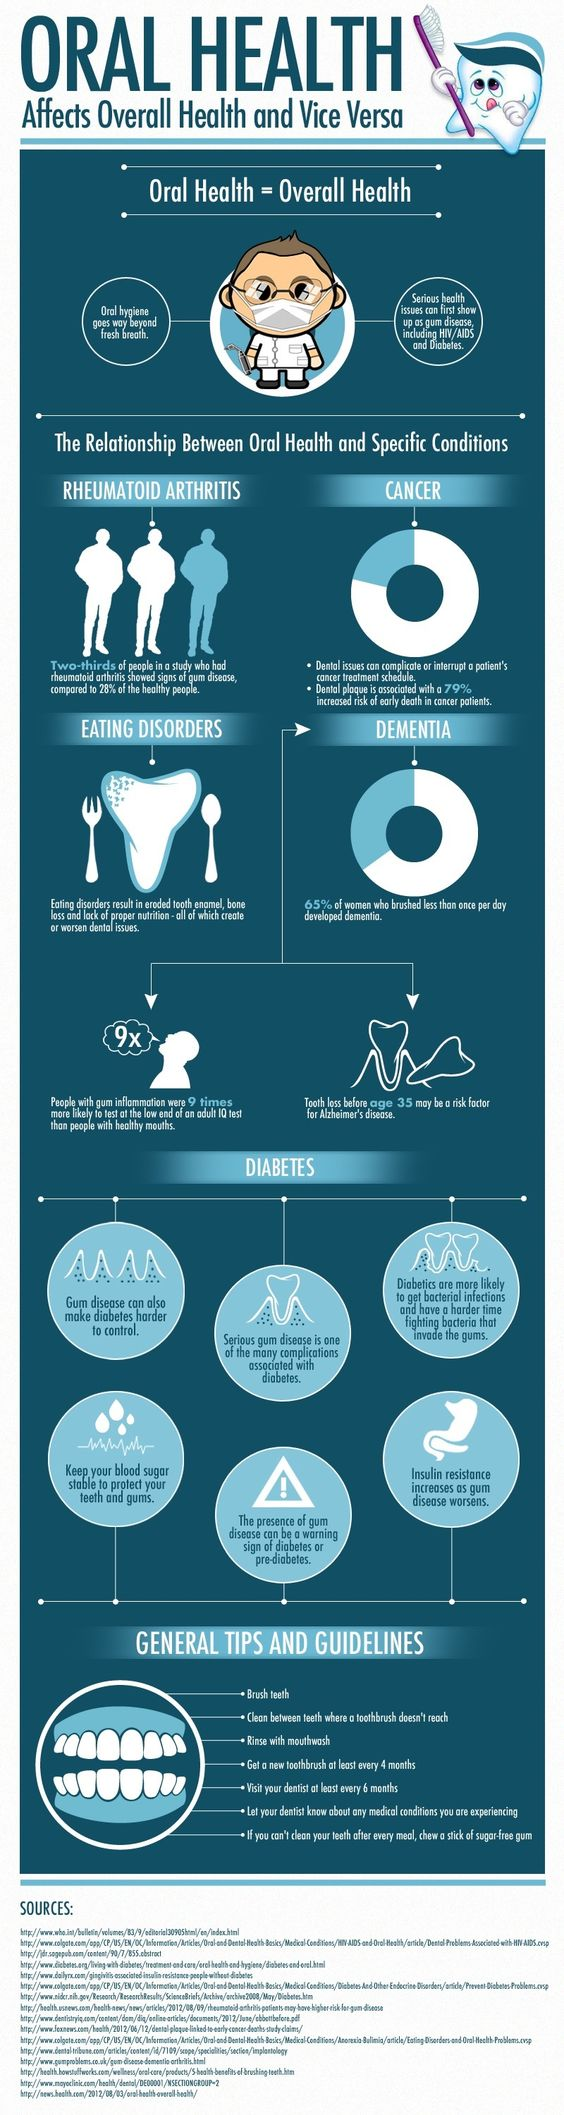 oral health affects overall health and vice versa